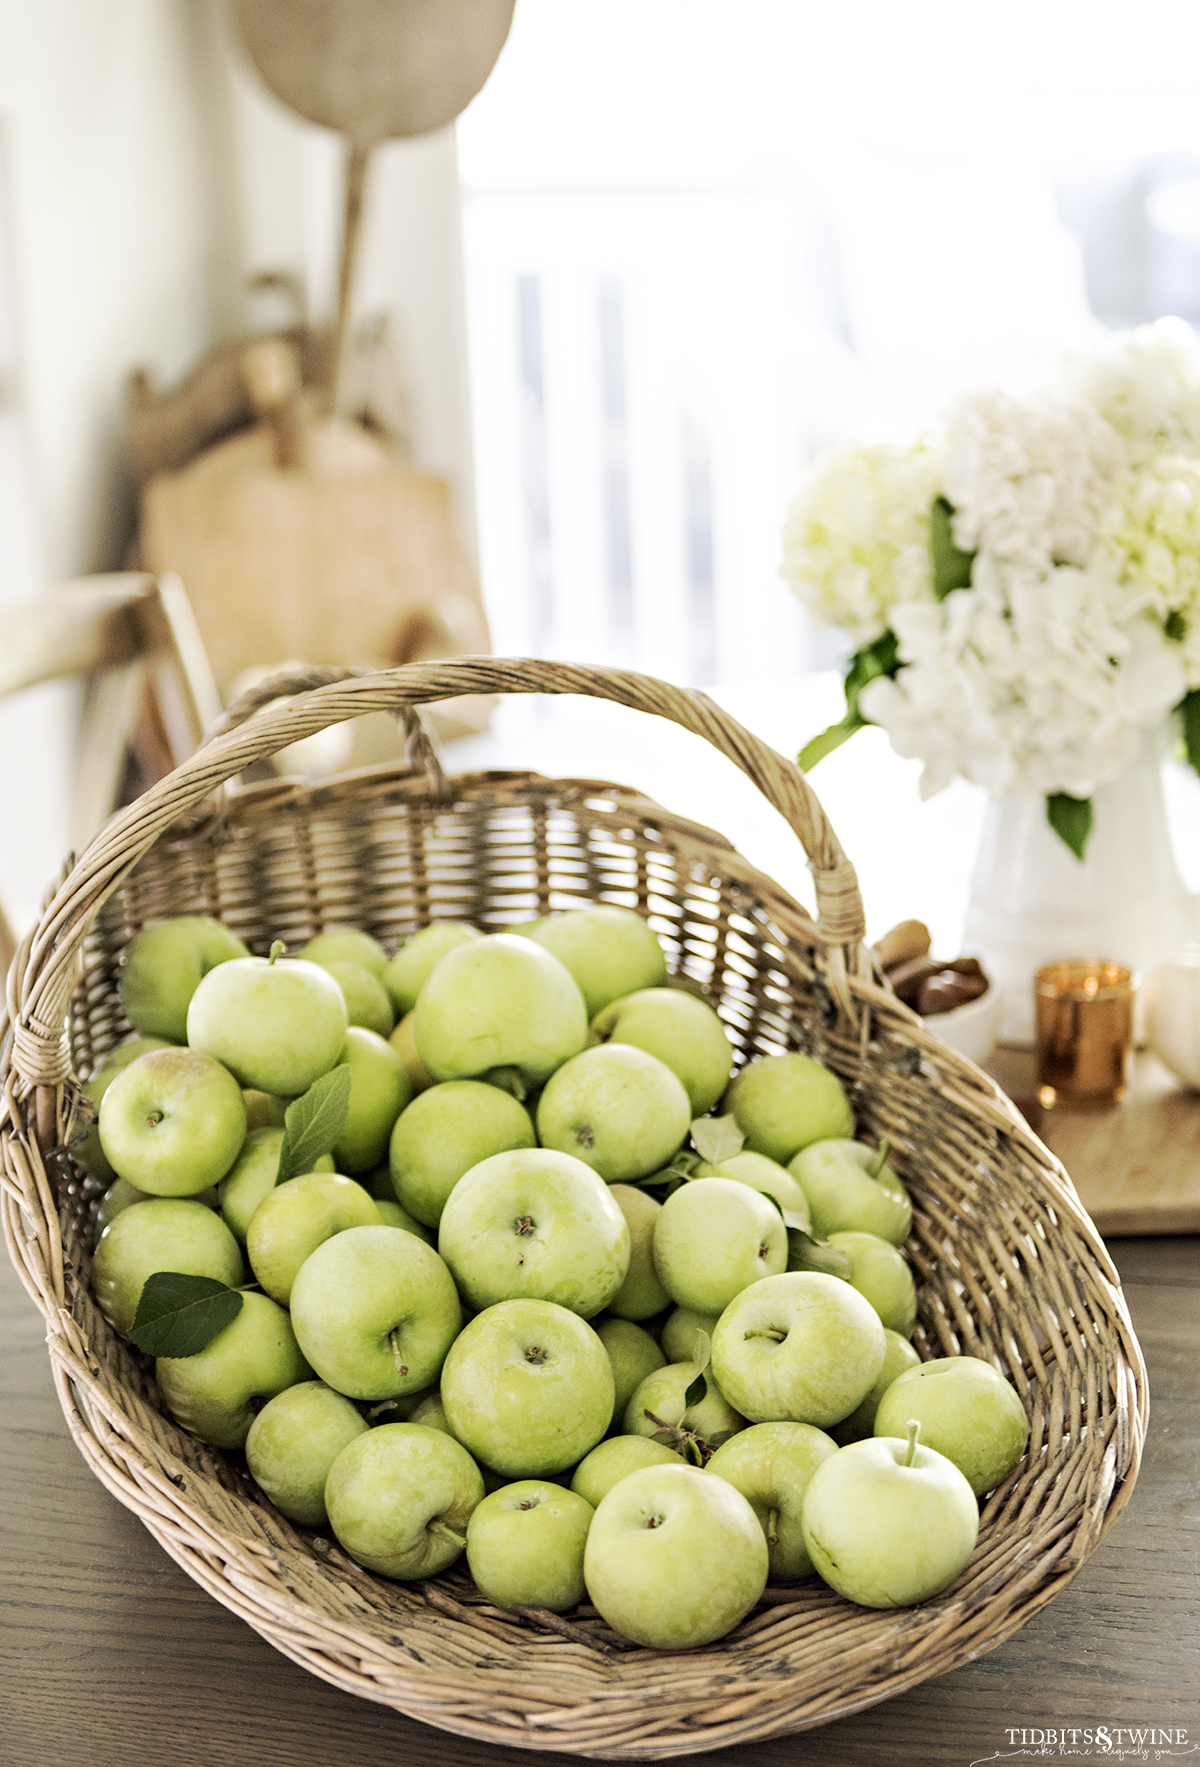 harvest basket full of green apples on kitchen table with white hydrangeas in a pitcher in the background with a collection of breadboards in the corner